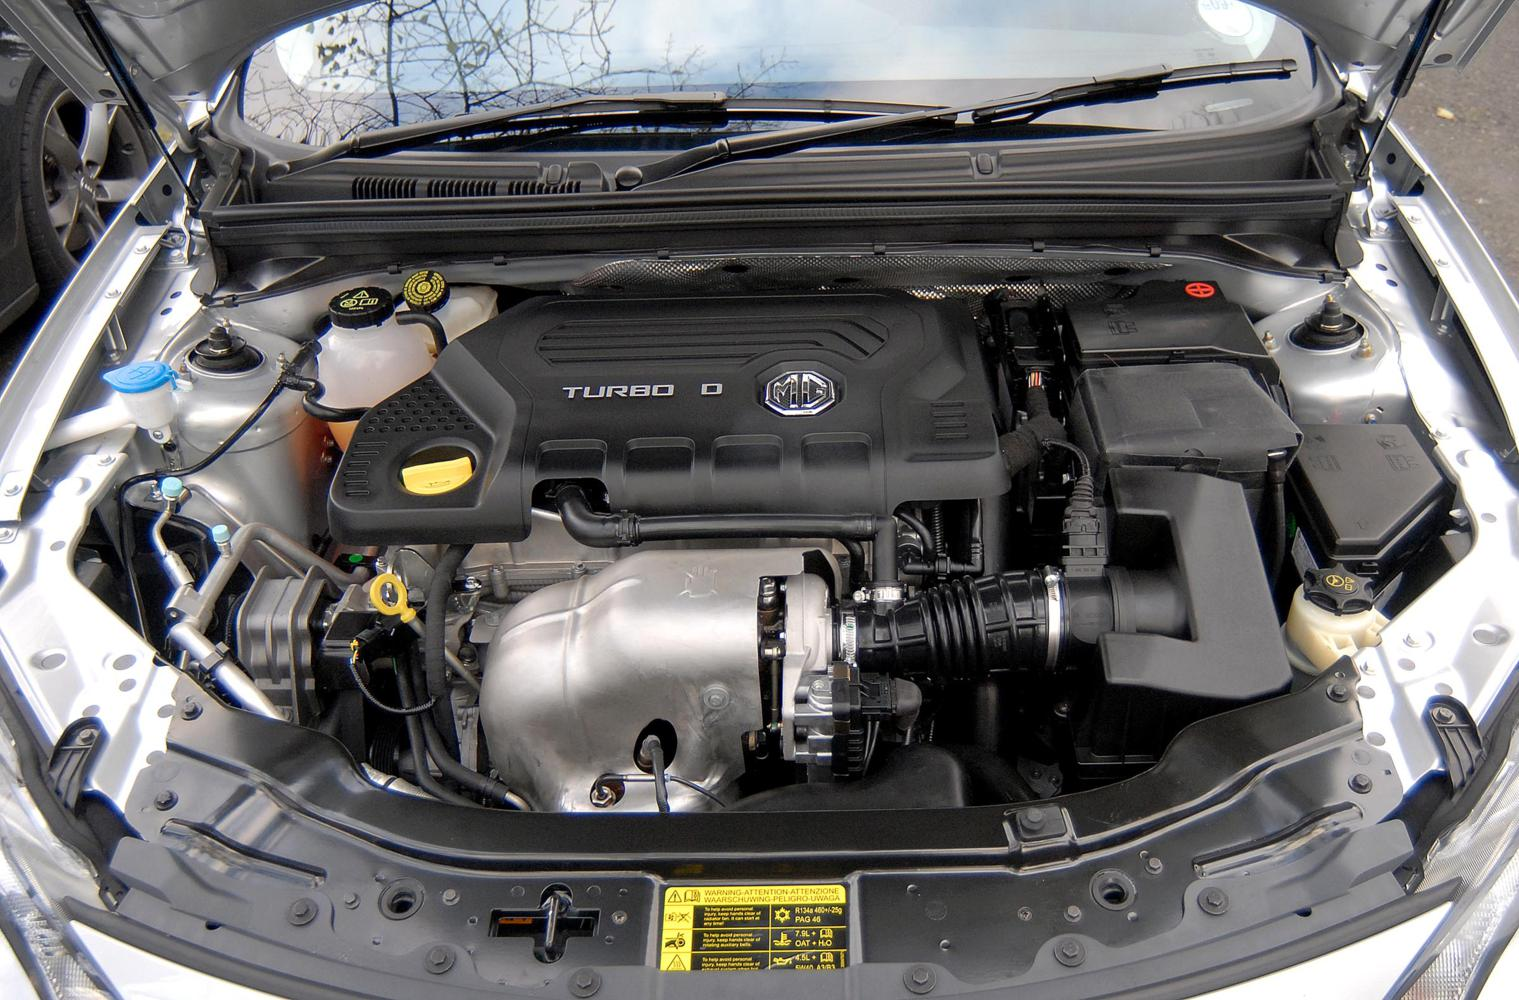 Mg6 Diesel 2012 Dti Tech Engine Front Seat Driver